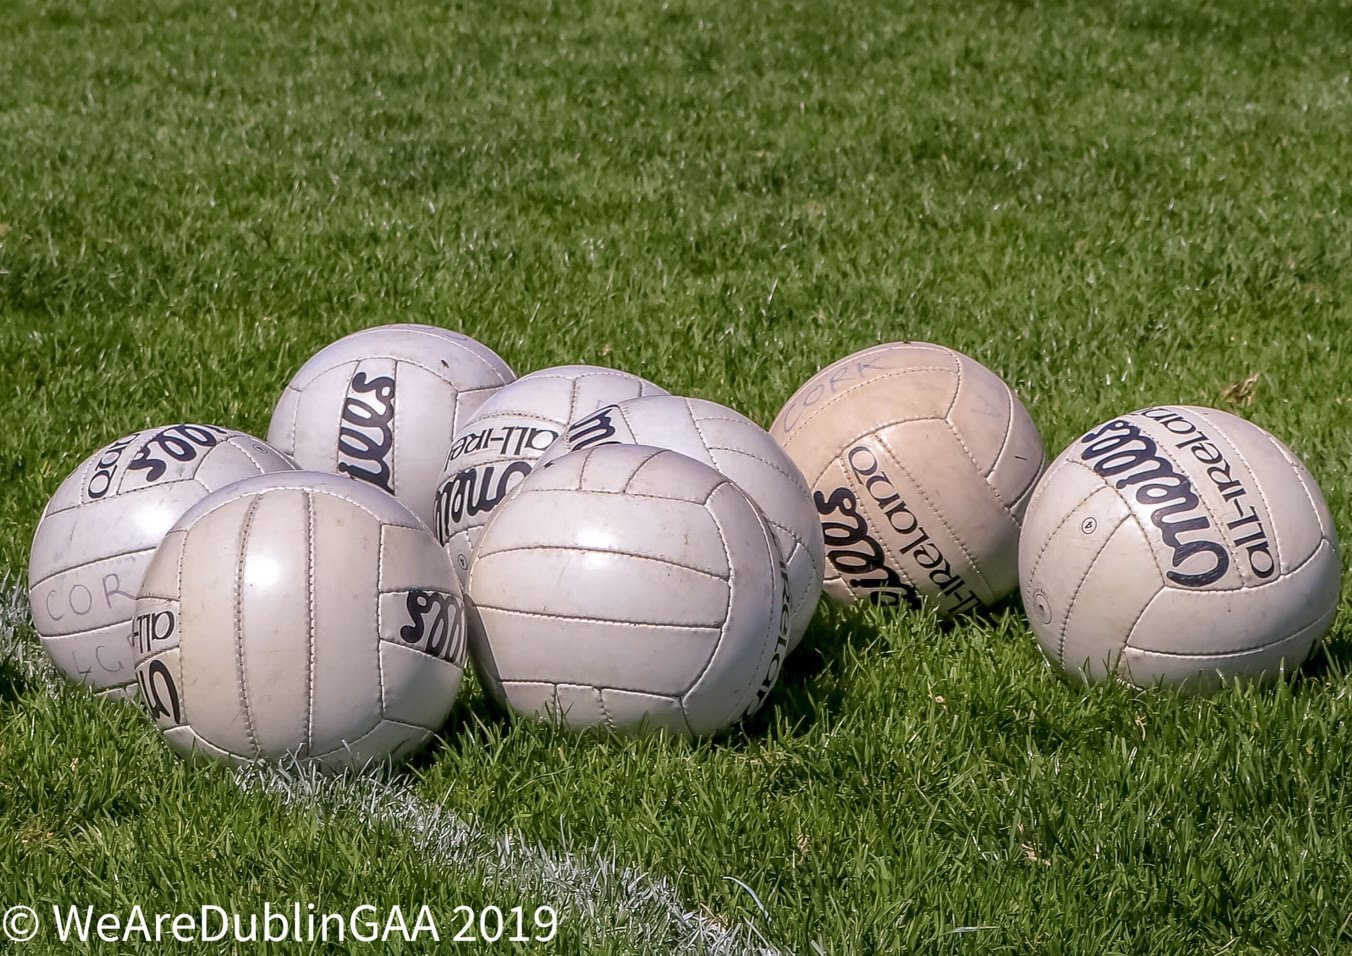 Eight ladies Gaelic footballs on a pitch, plenty of balls hit the back of the net on Wednesday night with 263 goals scored in the Dublin LGFA Adult League round 2 results